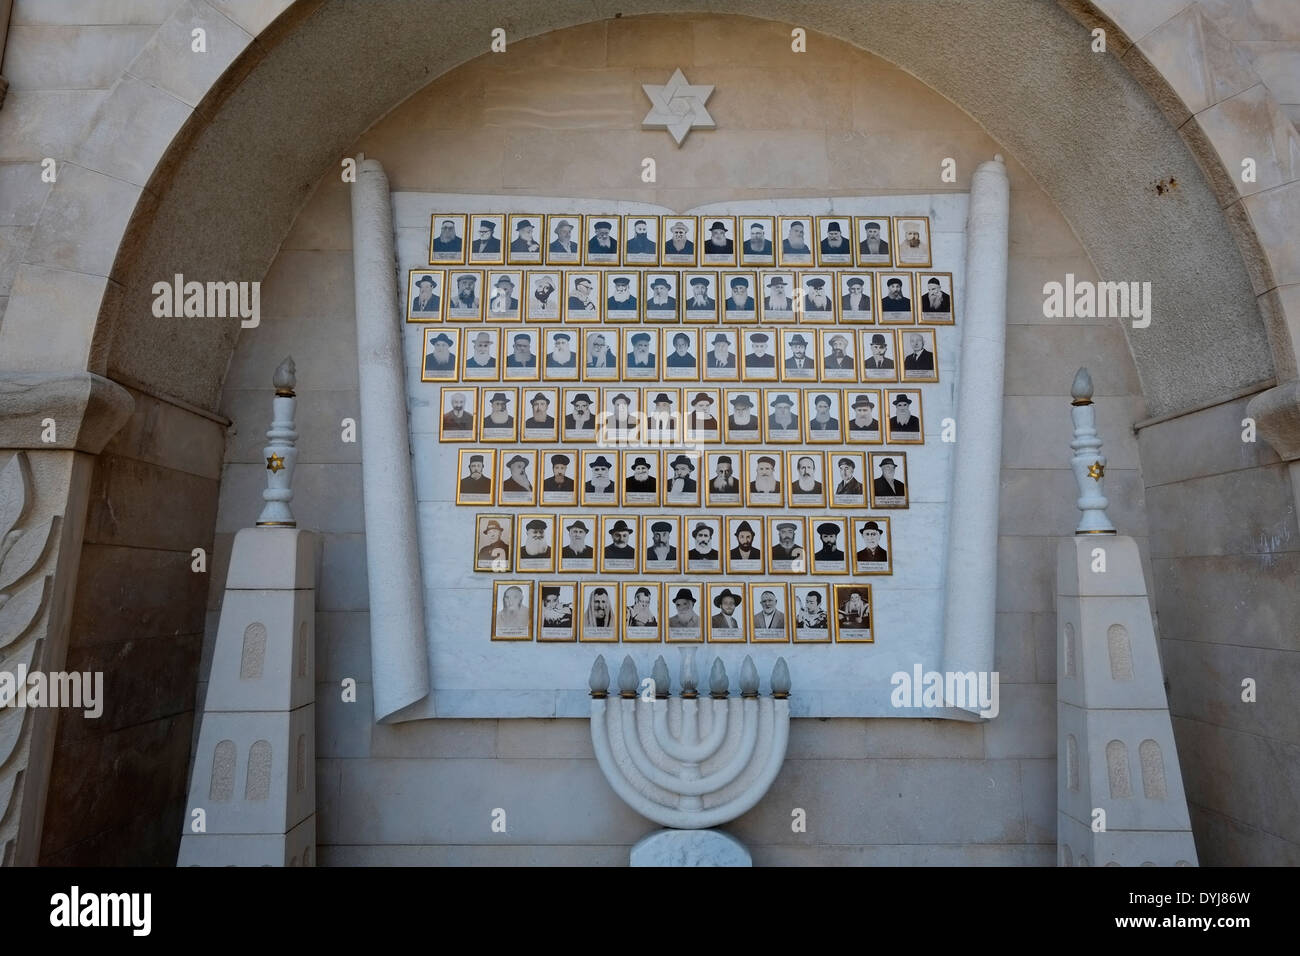 Commemoration wall for Georgian Jews at the courtyard of the Great Synagogue in Tbilisi Republic of Georgia - Stock Image